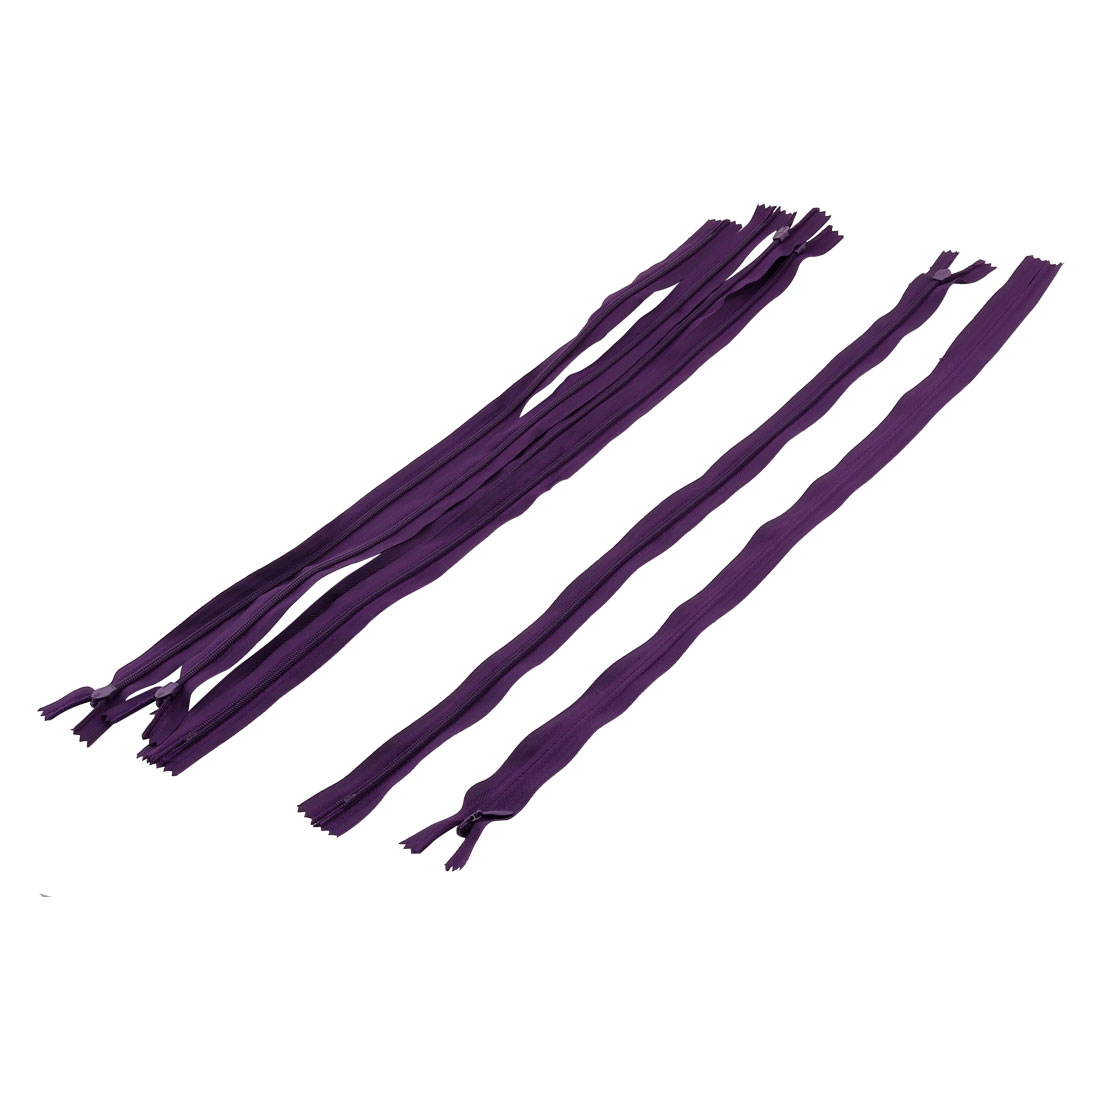 Tailor Sewer Nylon Invisible Smooth Zippers Sewing Tool Purple 46cm Length 6PCS